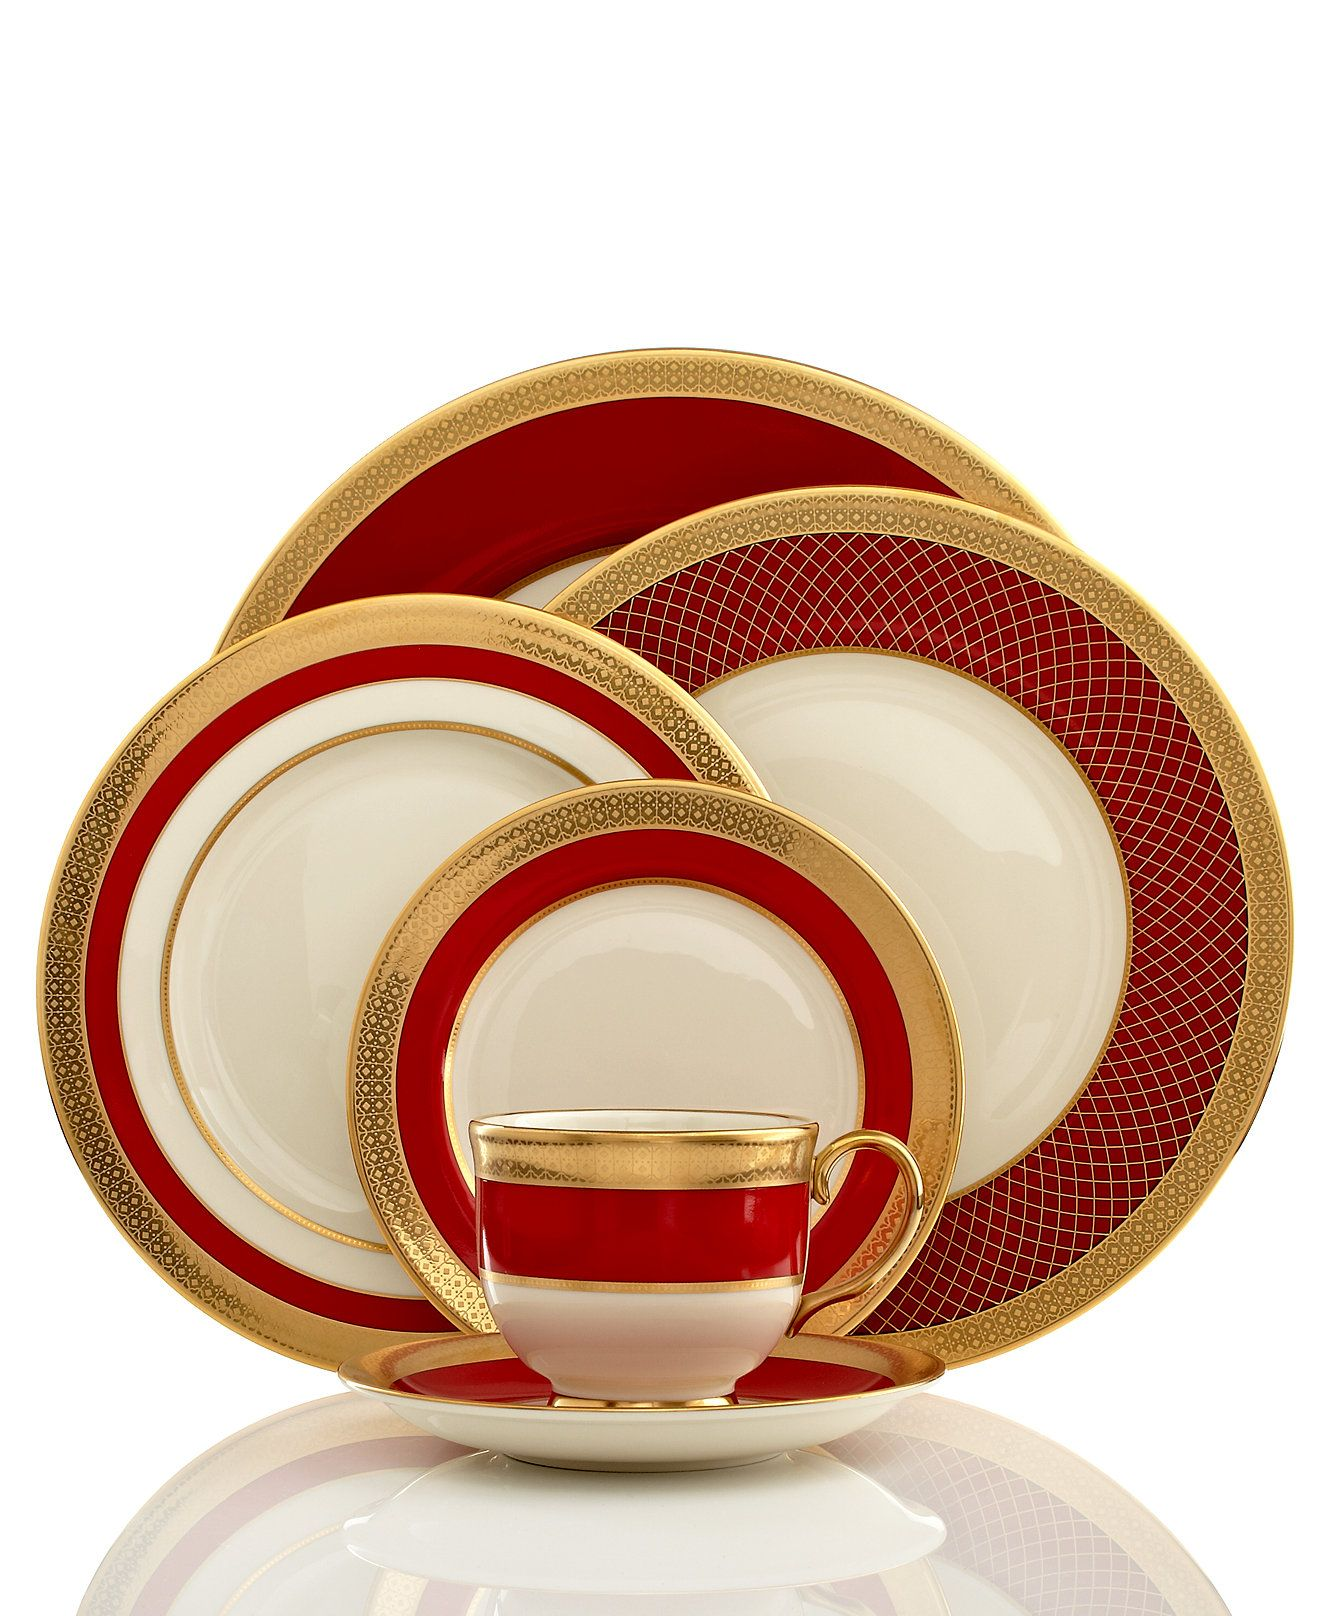 Fine China Patterns lenox embassy collection | dinnerware, fine china and tablewares